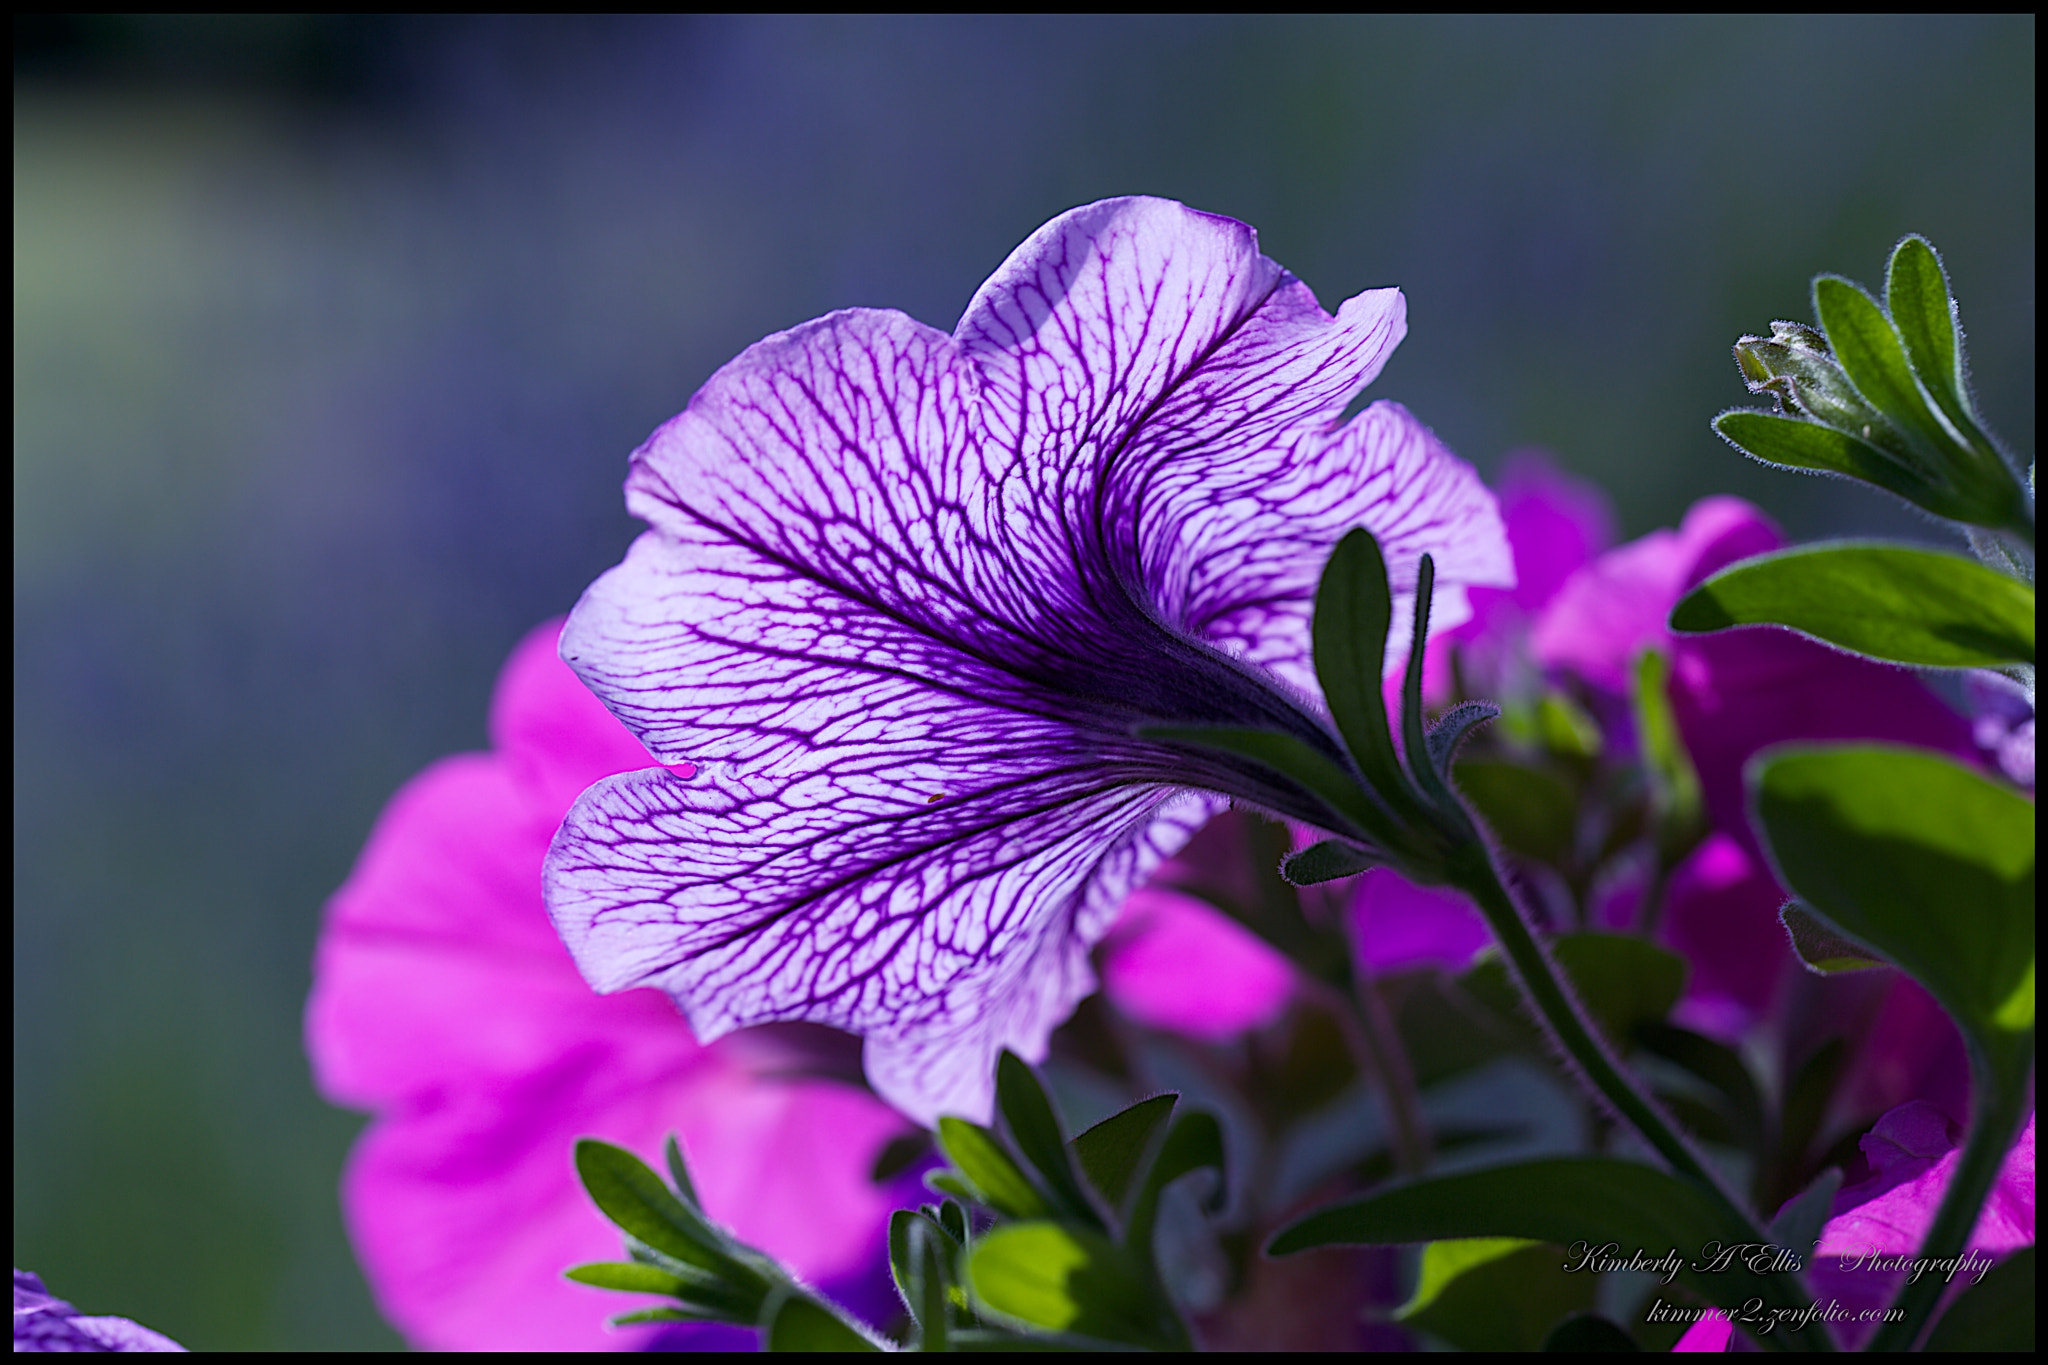 Photograph Backlit Petunia by Kimberly Ellis on 500px